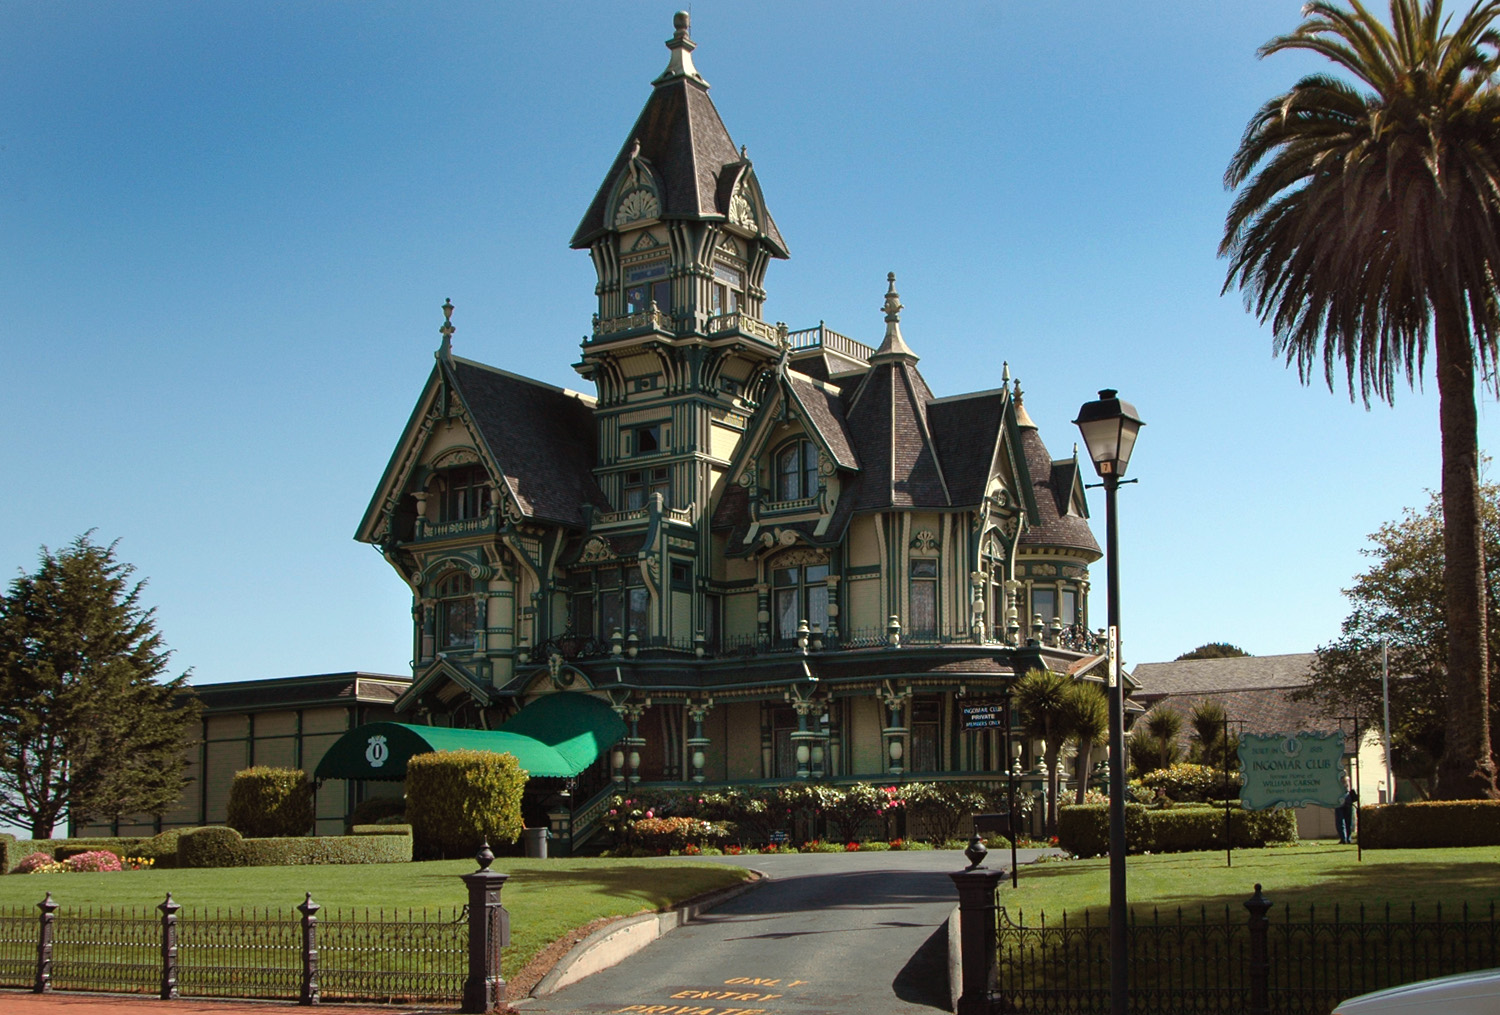 The Carson Mansion in Eureka, CA